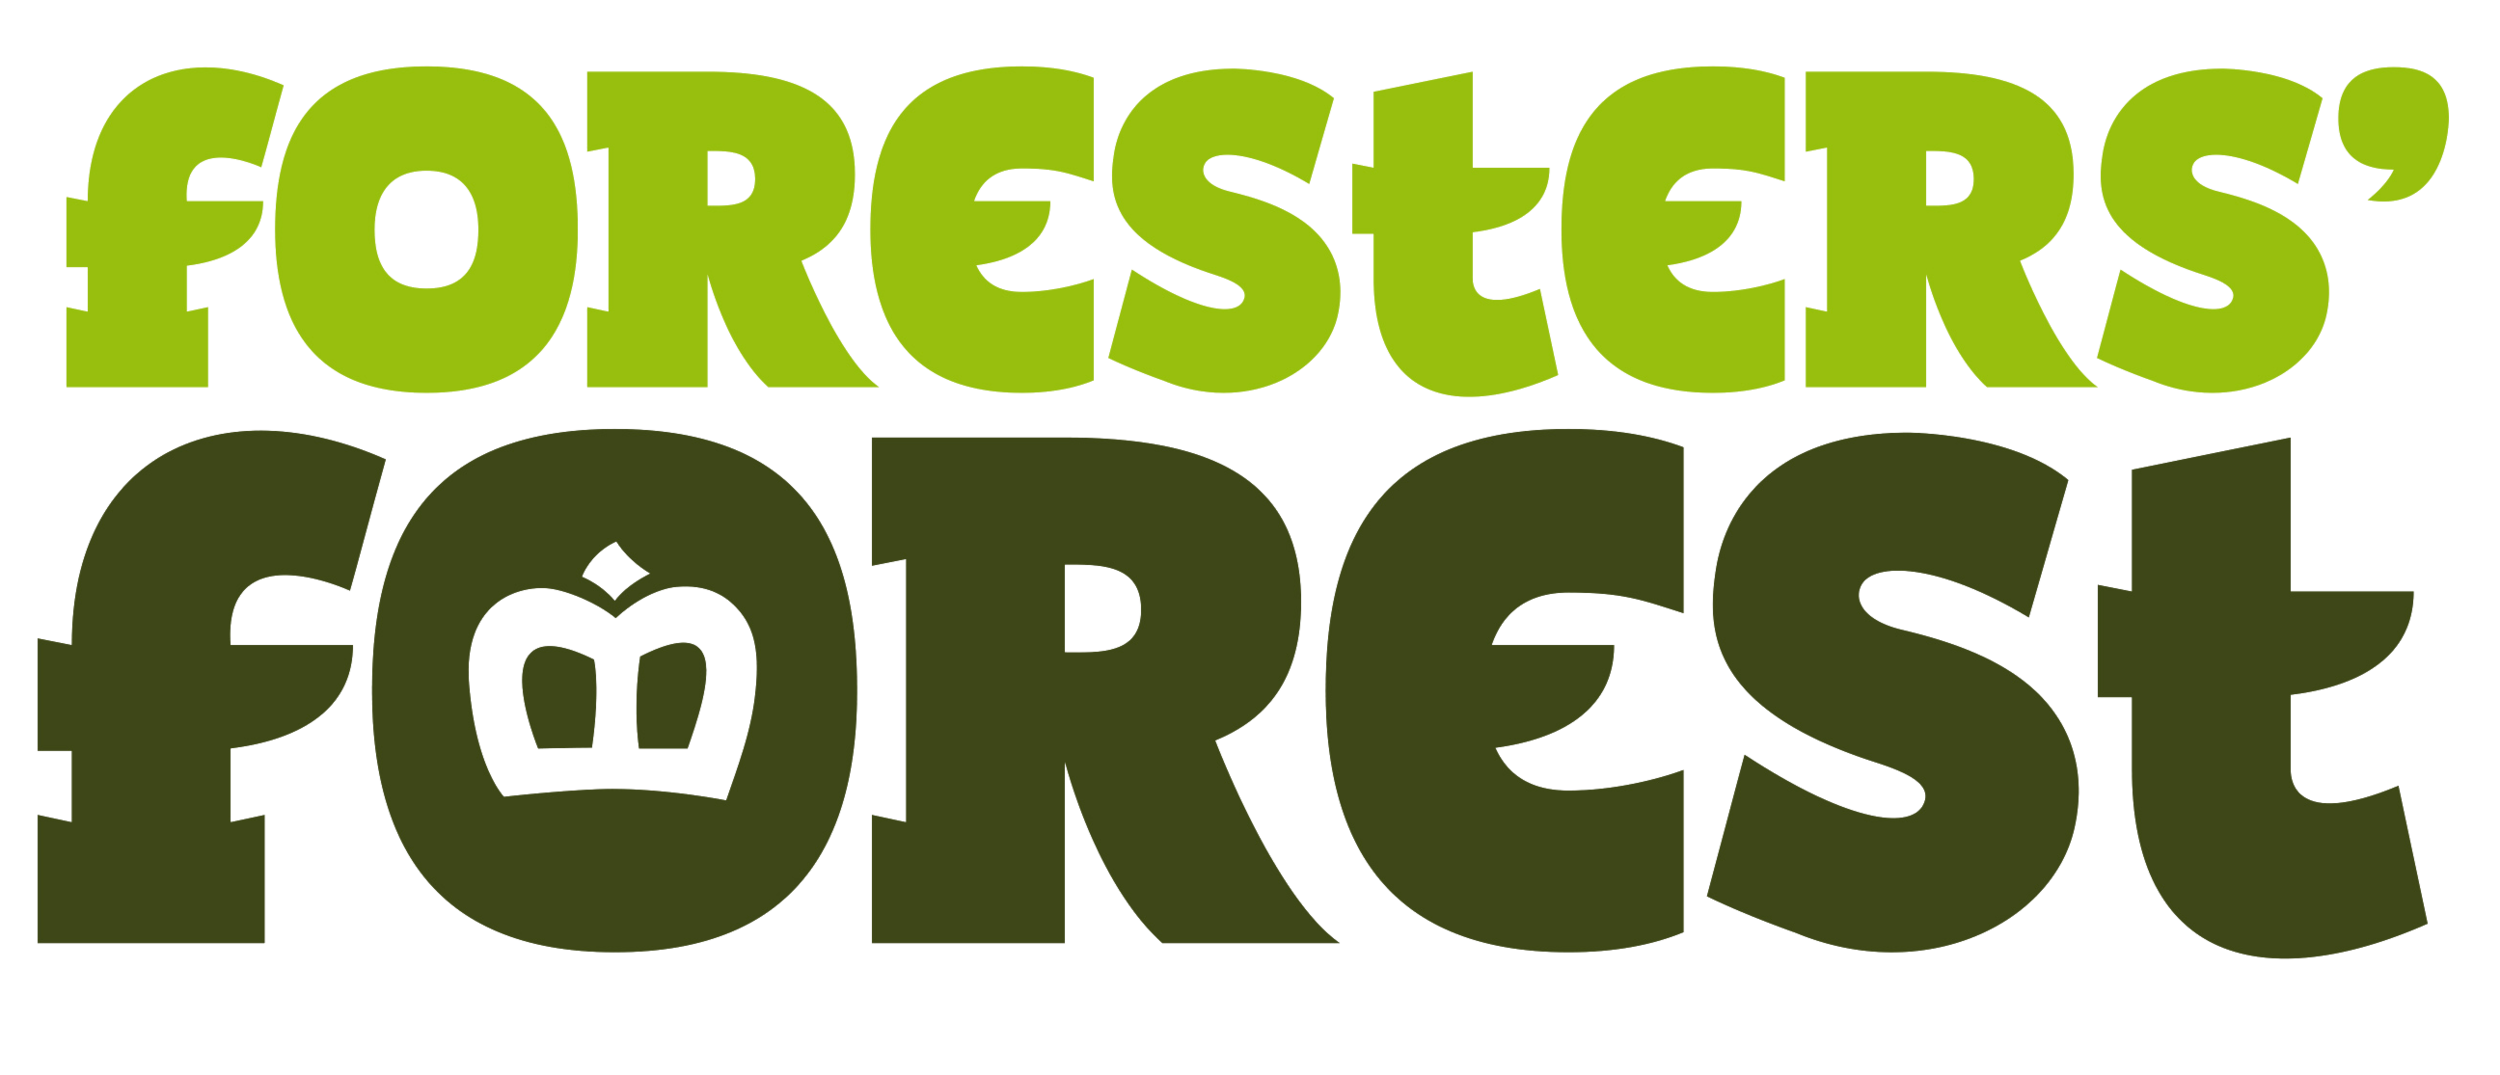 Foresters forest.png